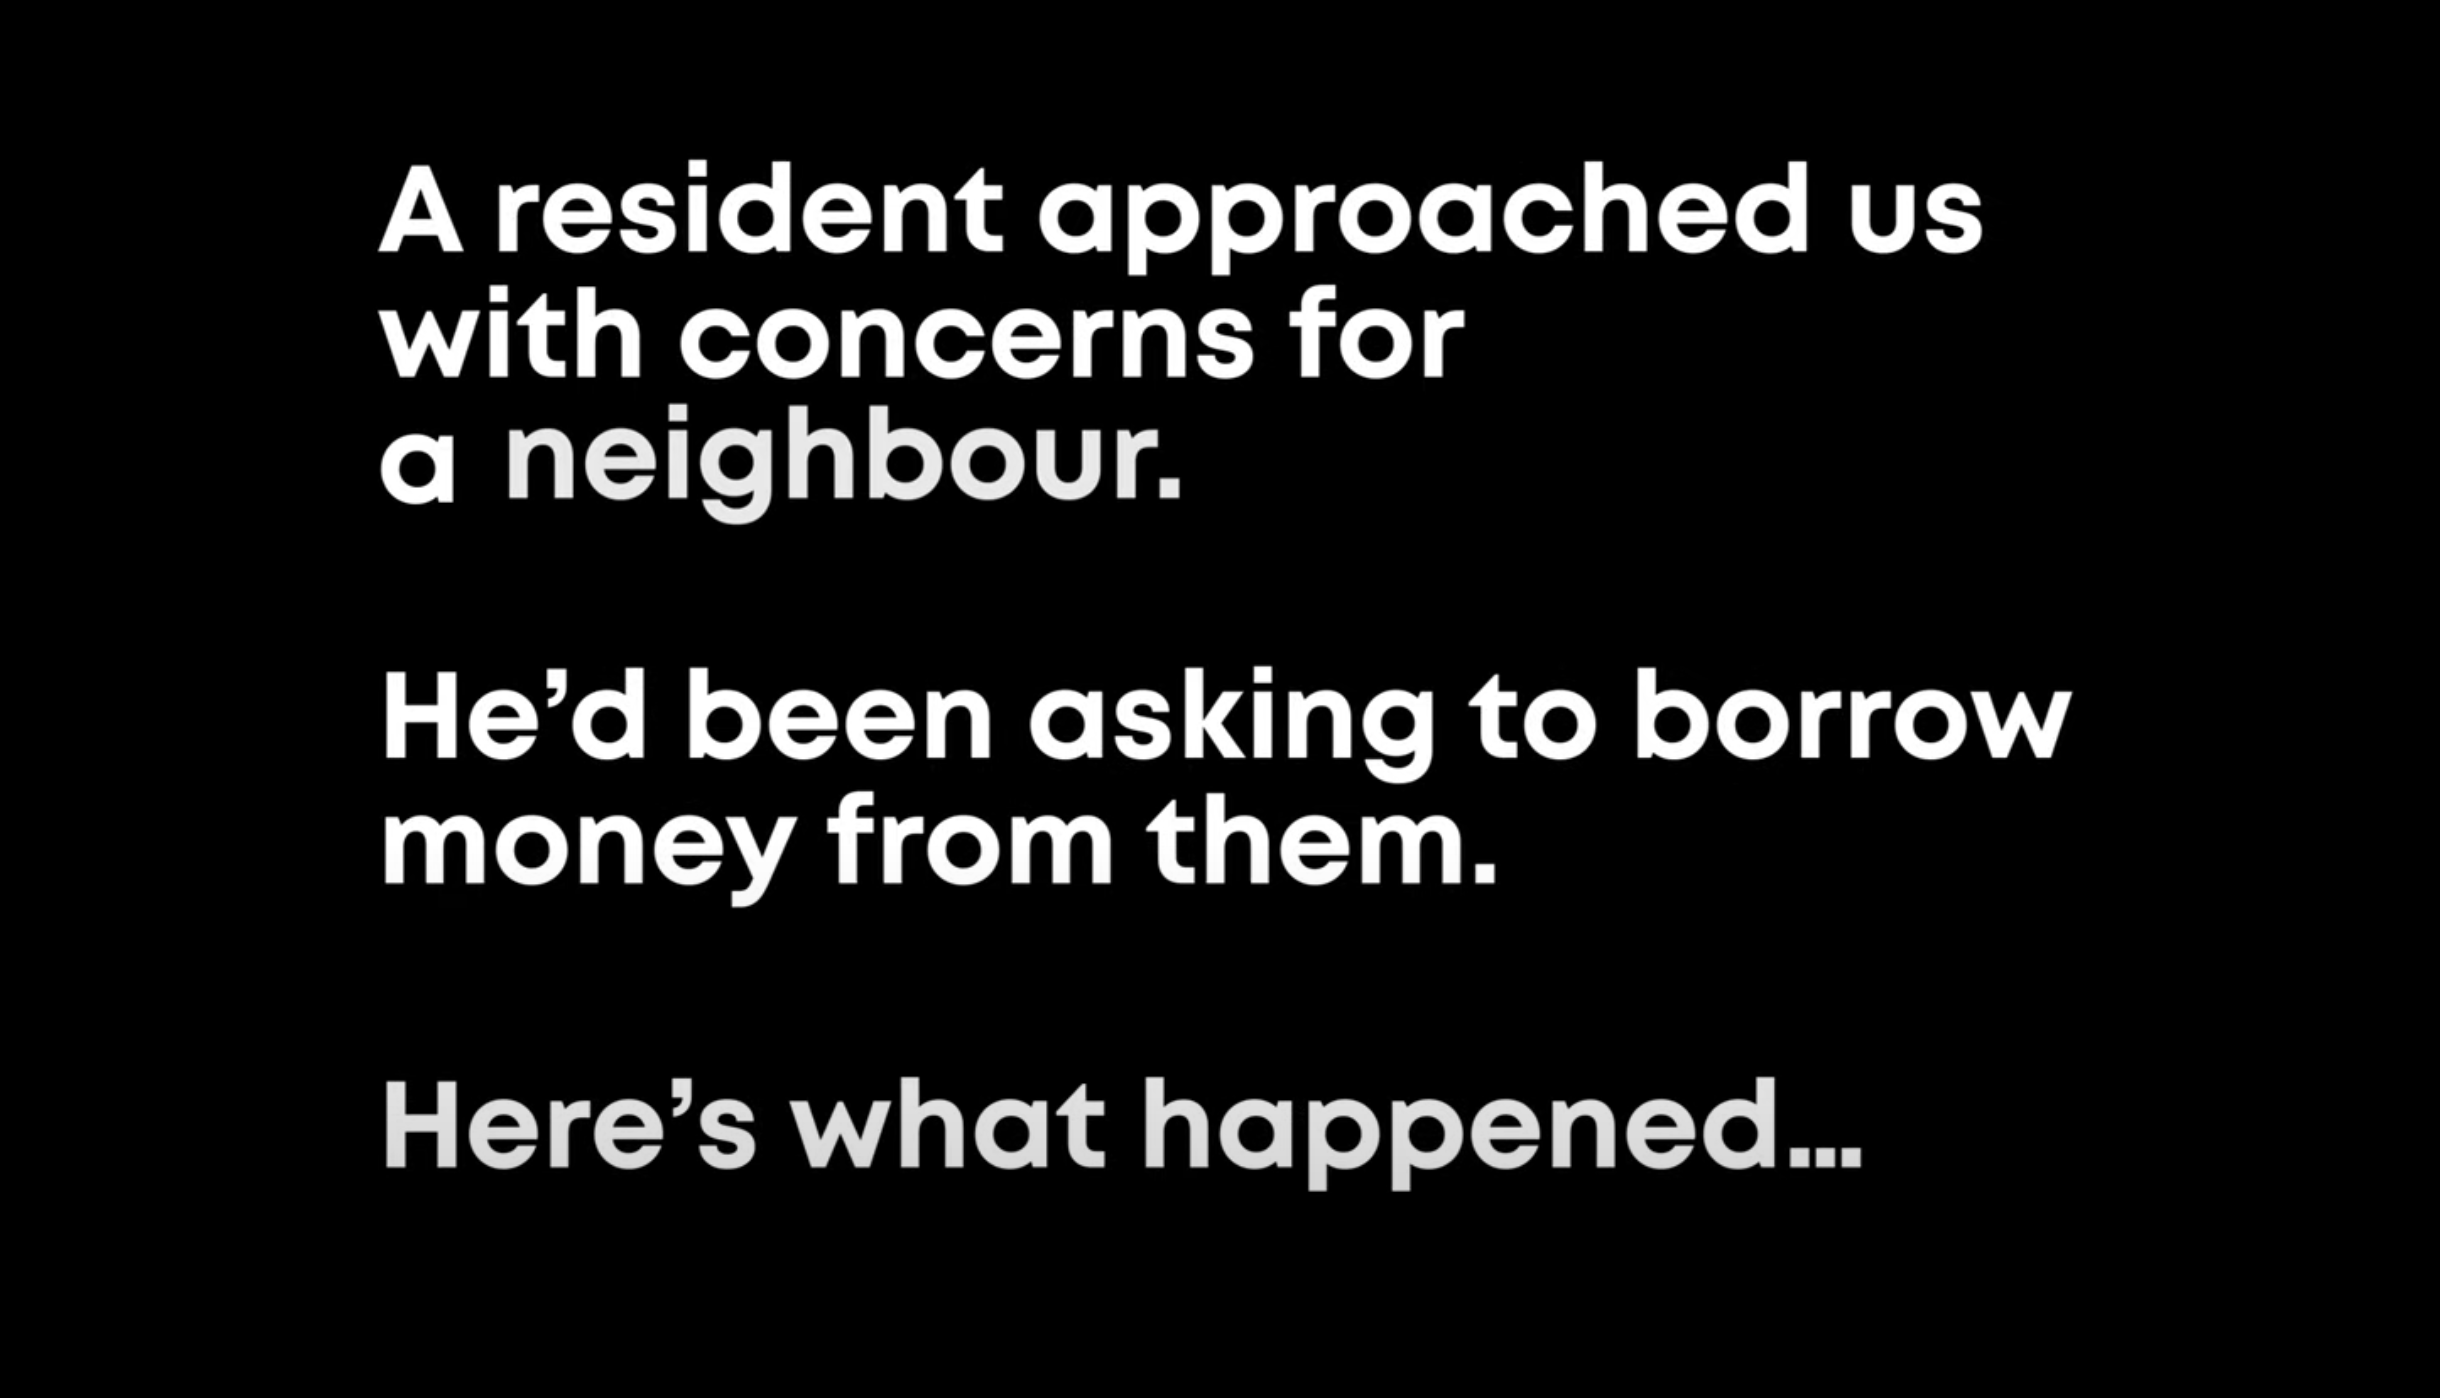 A Resident Approached Us With Concerns For A Neighbour Hed Been Asking To Borrow Money From Them Heres What Happened